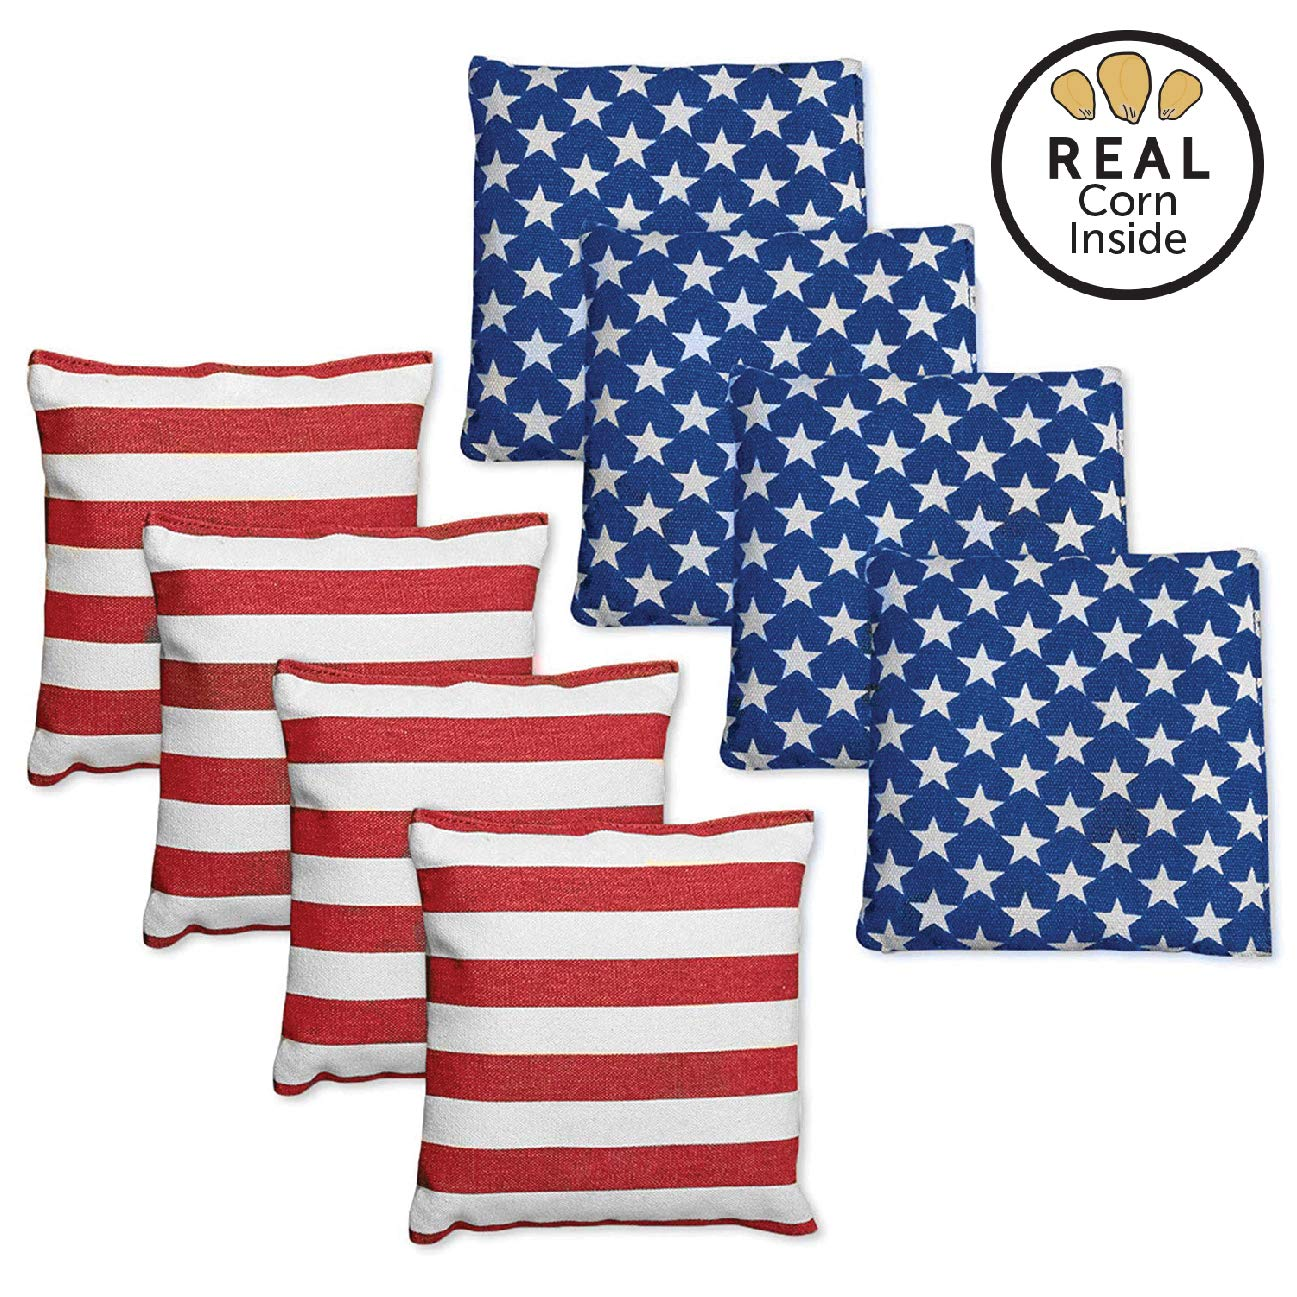 Corn Filled Cornhole Bags - Set of 8 Bright American Flag Bean Bags for Corn Hole Game - Regulation Size & Weight - 4 Stars and 4 Stripes by Play Platoon